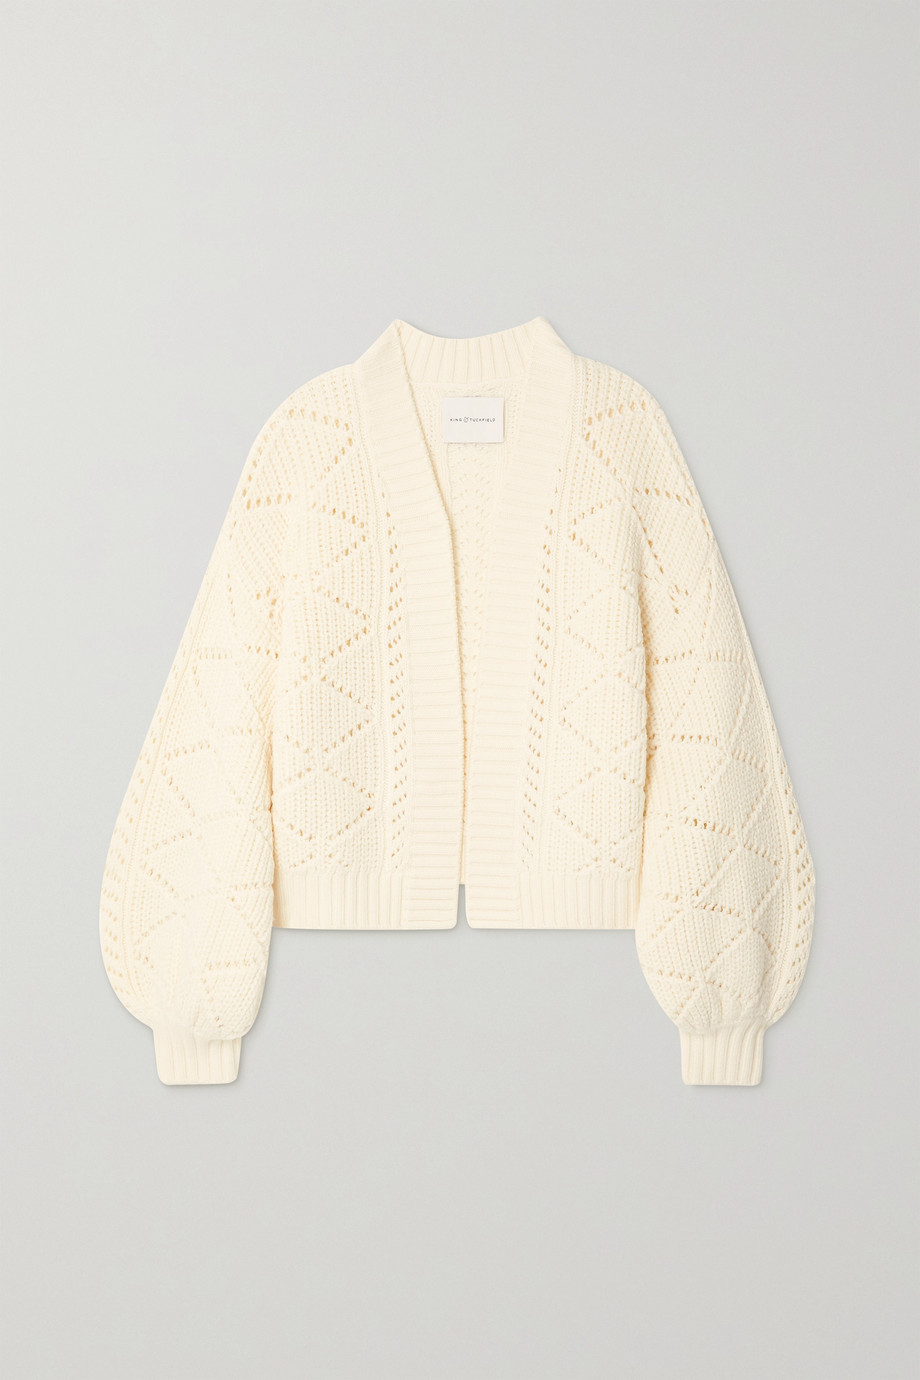 King & Tuckfield Pointelle-knit merino wool cardigan